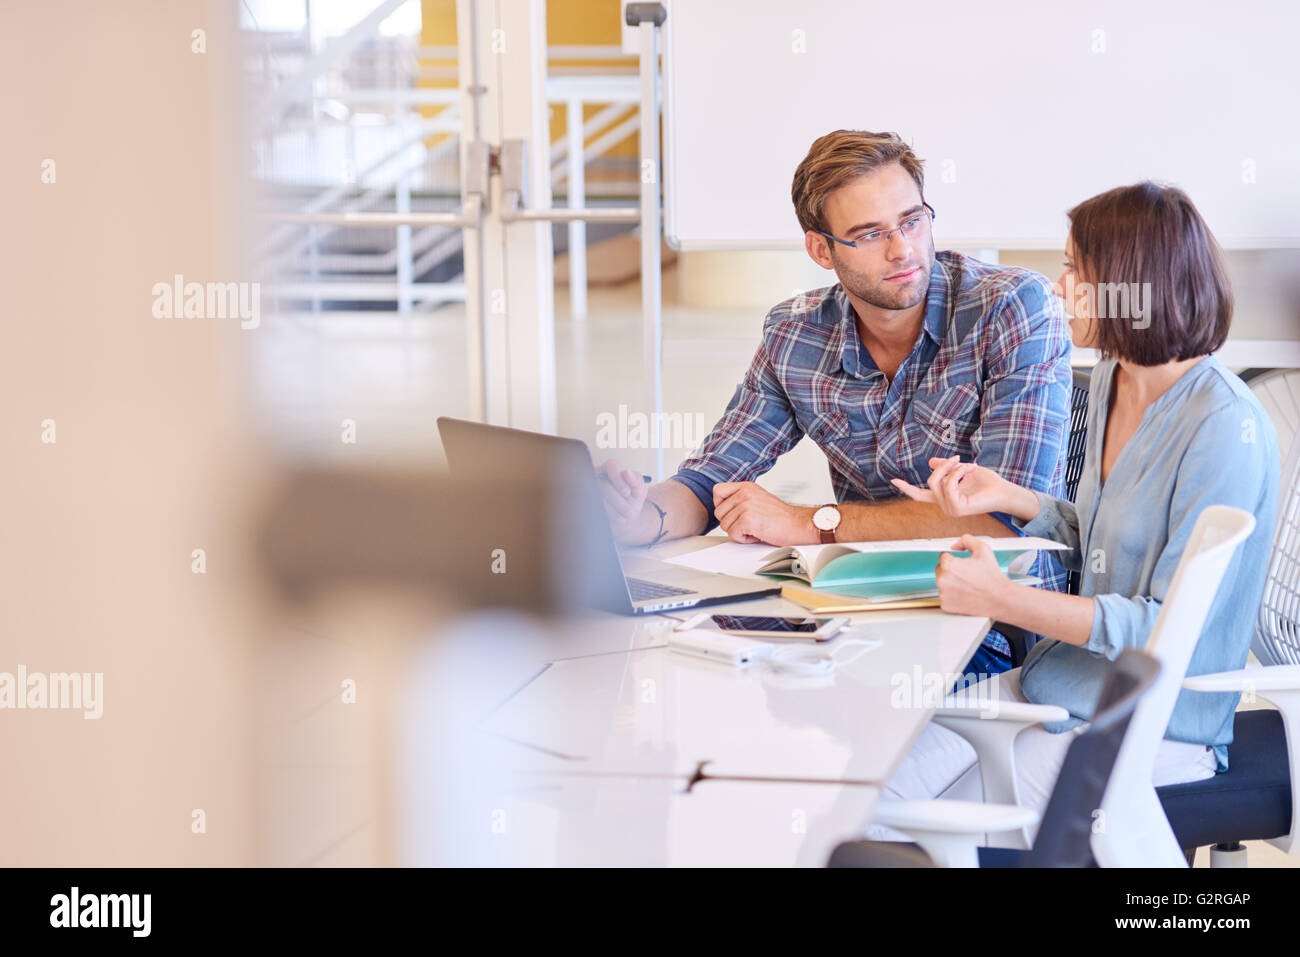 Business man and woman working together in conference room - Stock Image